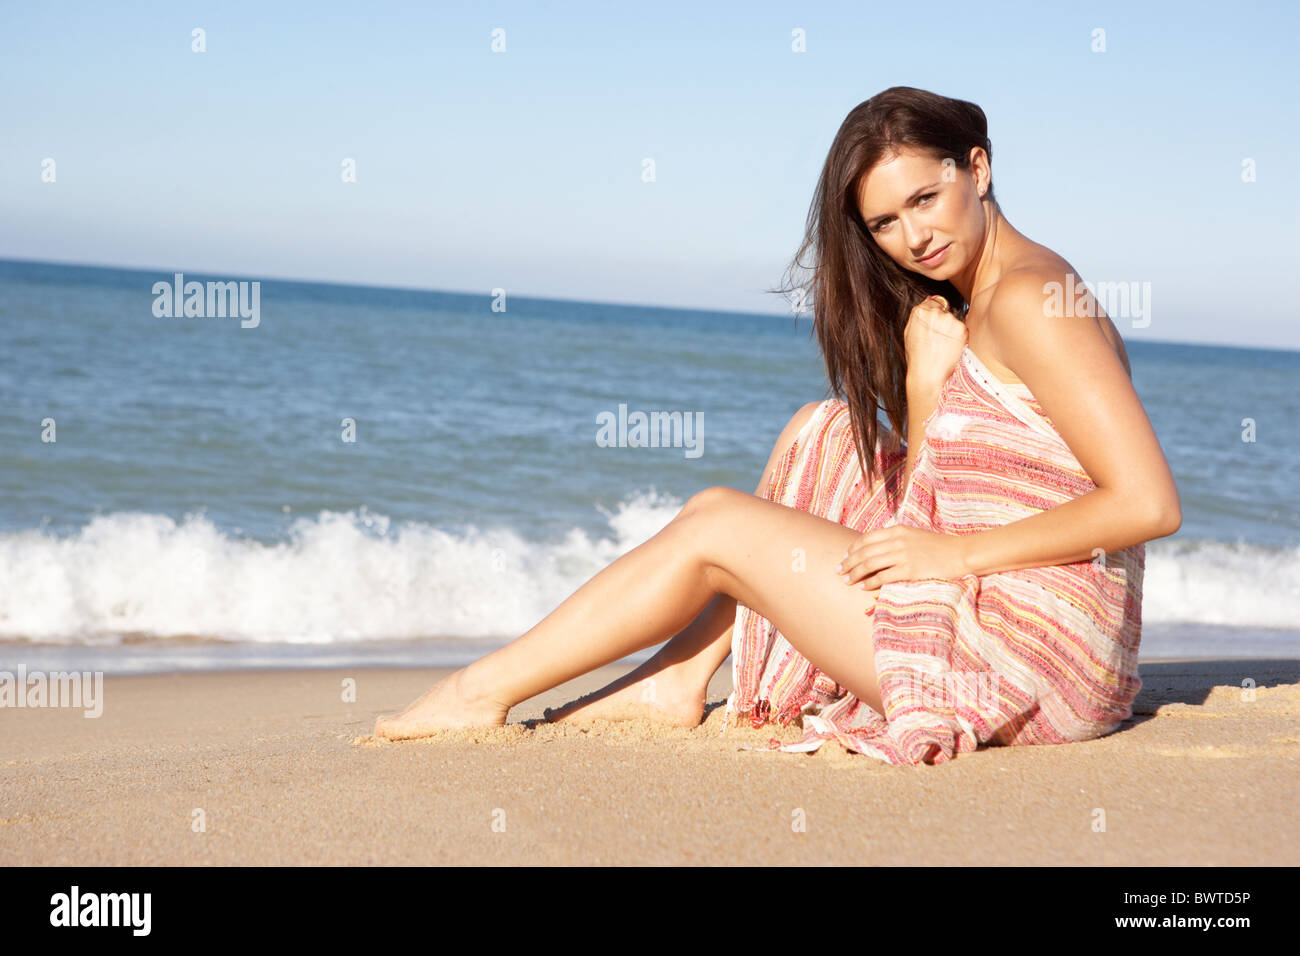 Young Woman Relaxing On Beach Wearing Wrap - Stock Image